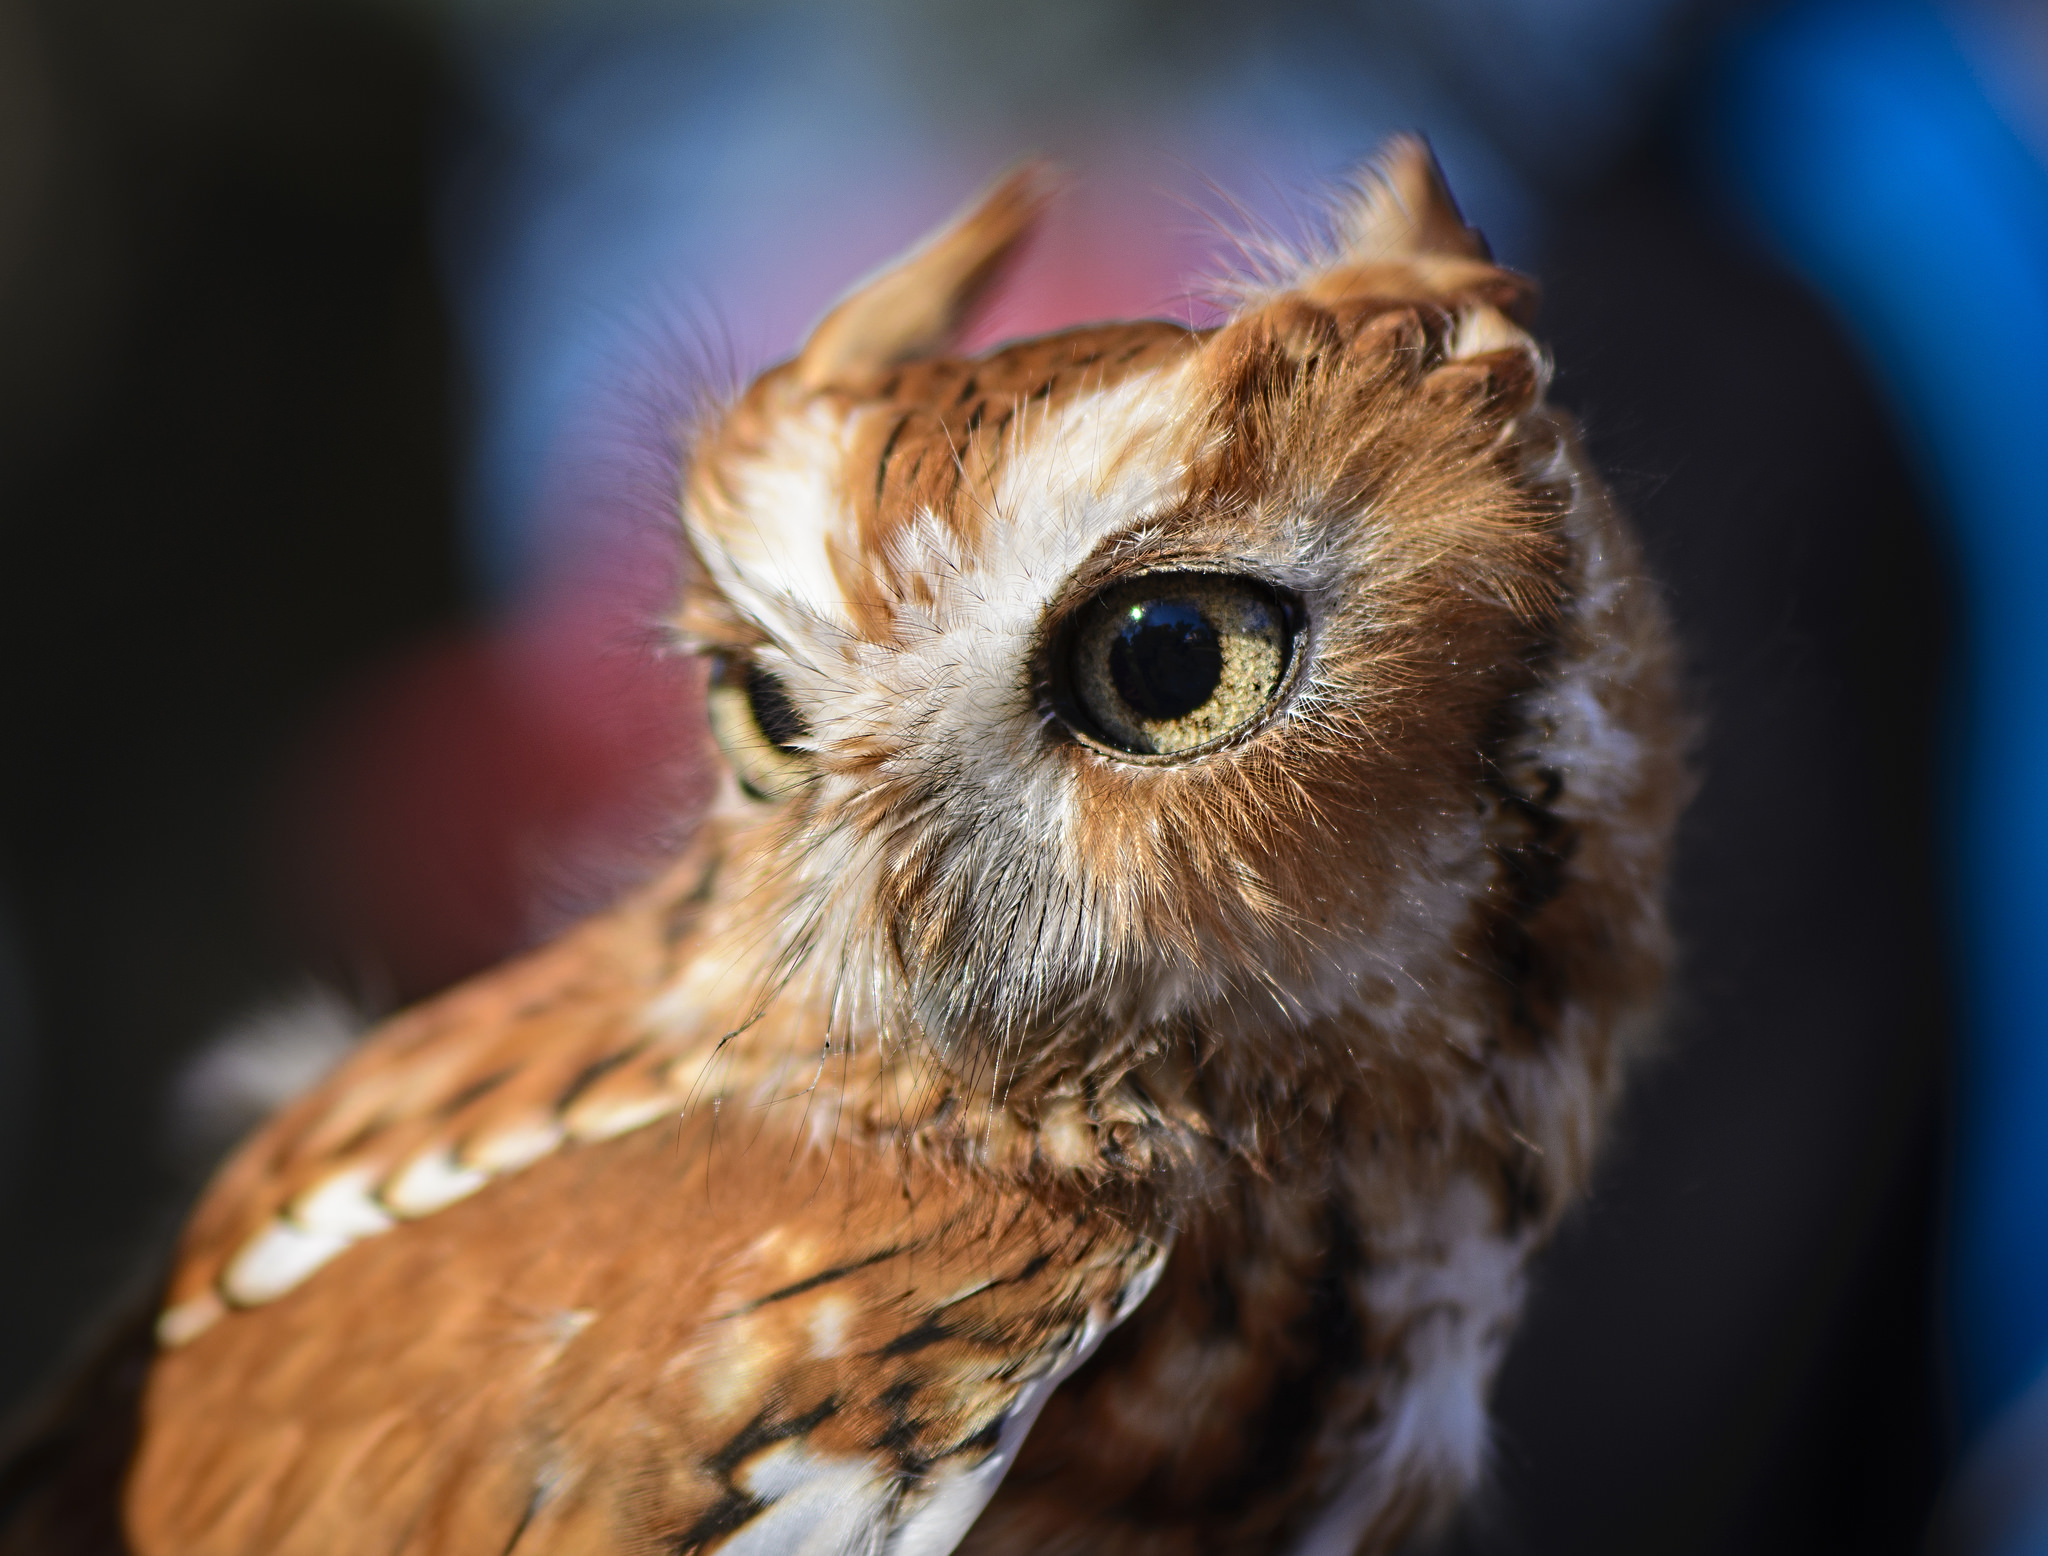 129097 download wallpaper Animals, Owl, Predator, Bird, Eyes screensavers and pictures for free